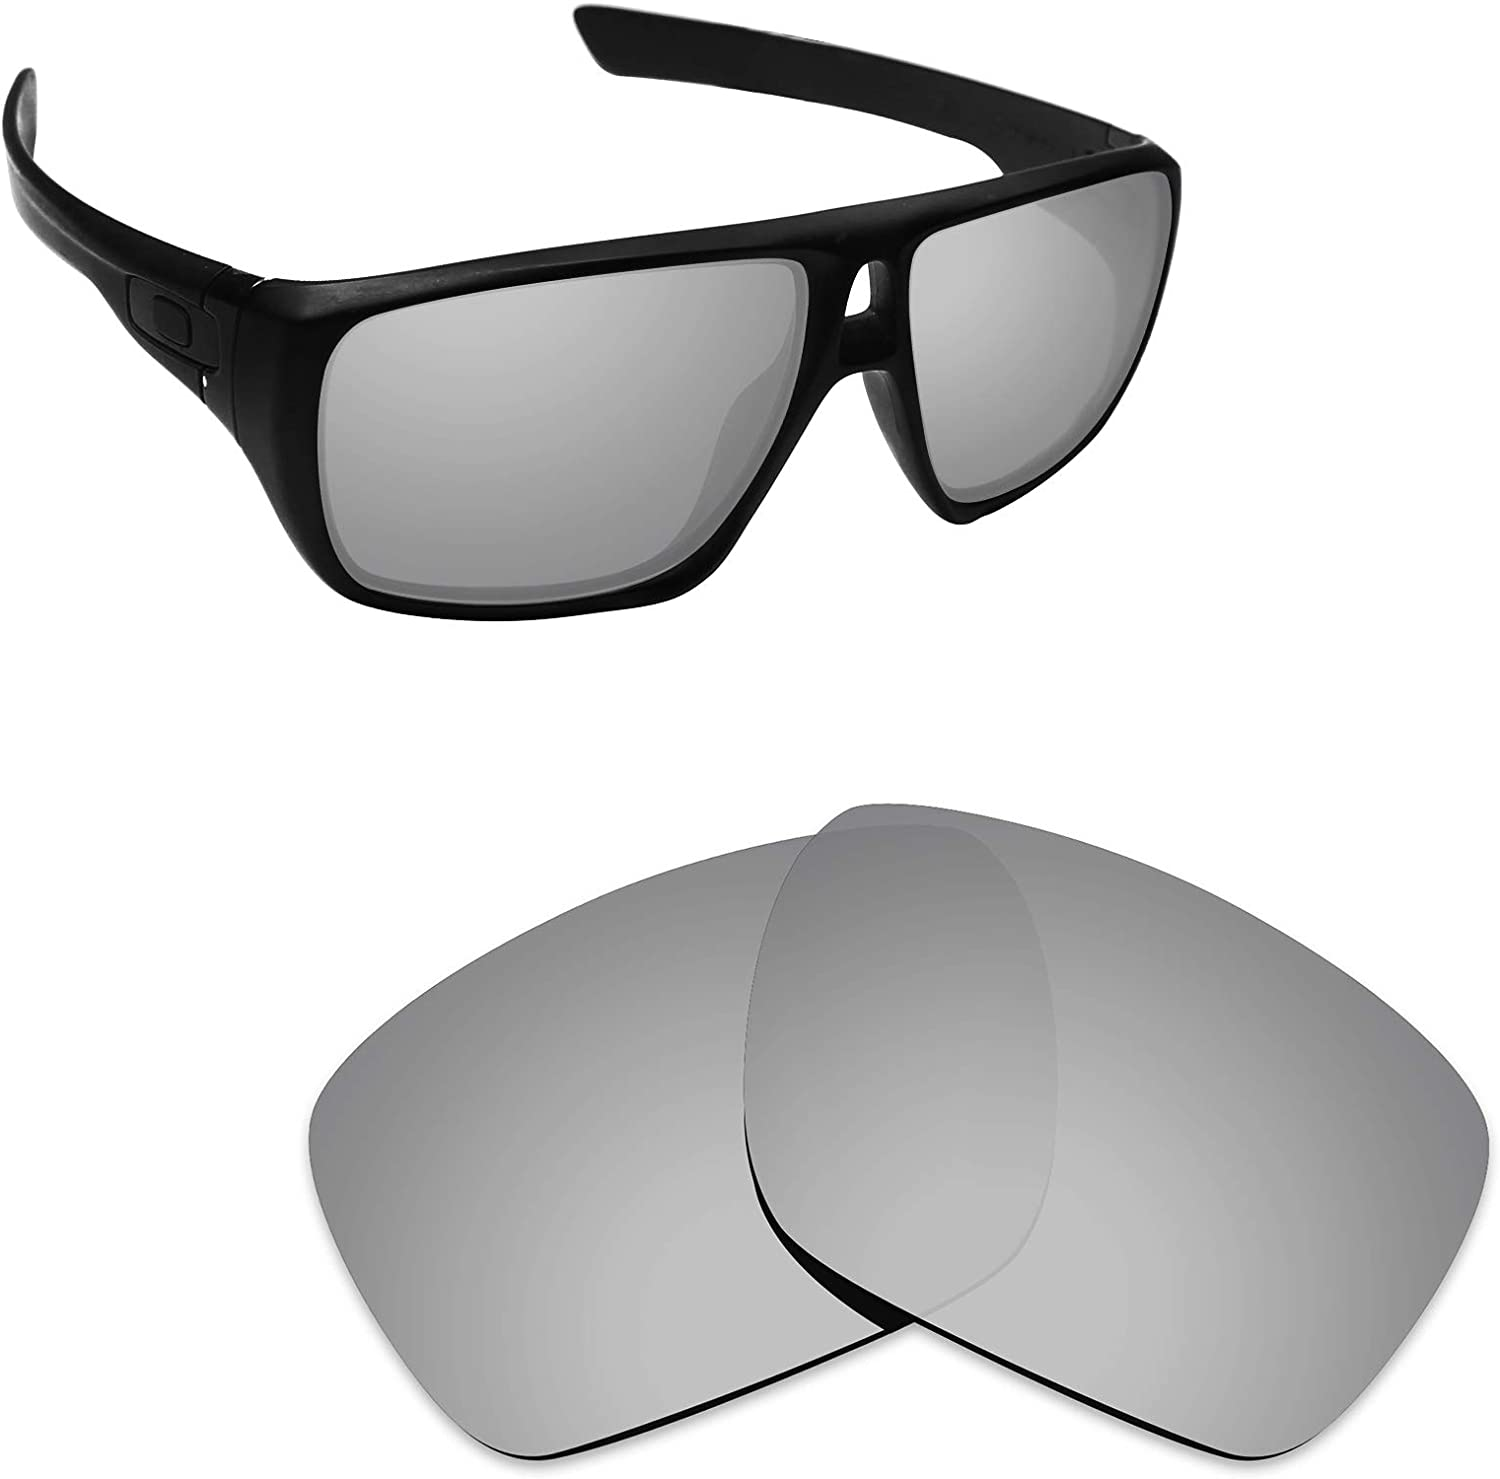 Max 40% OFF Alphax Polarized Replacement Lenses for Super Special SALE held Oakley 1 OO9090 Dispatch